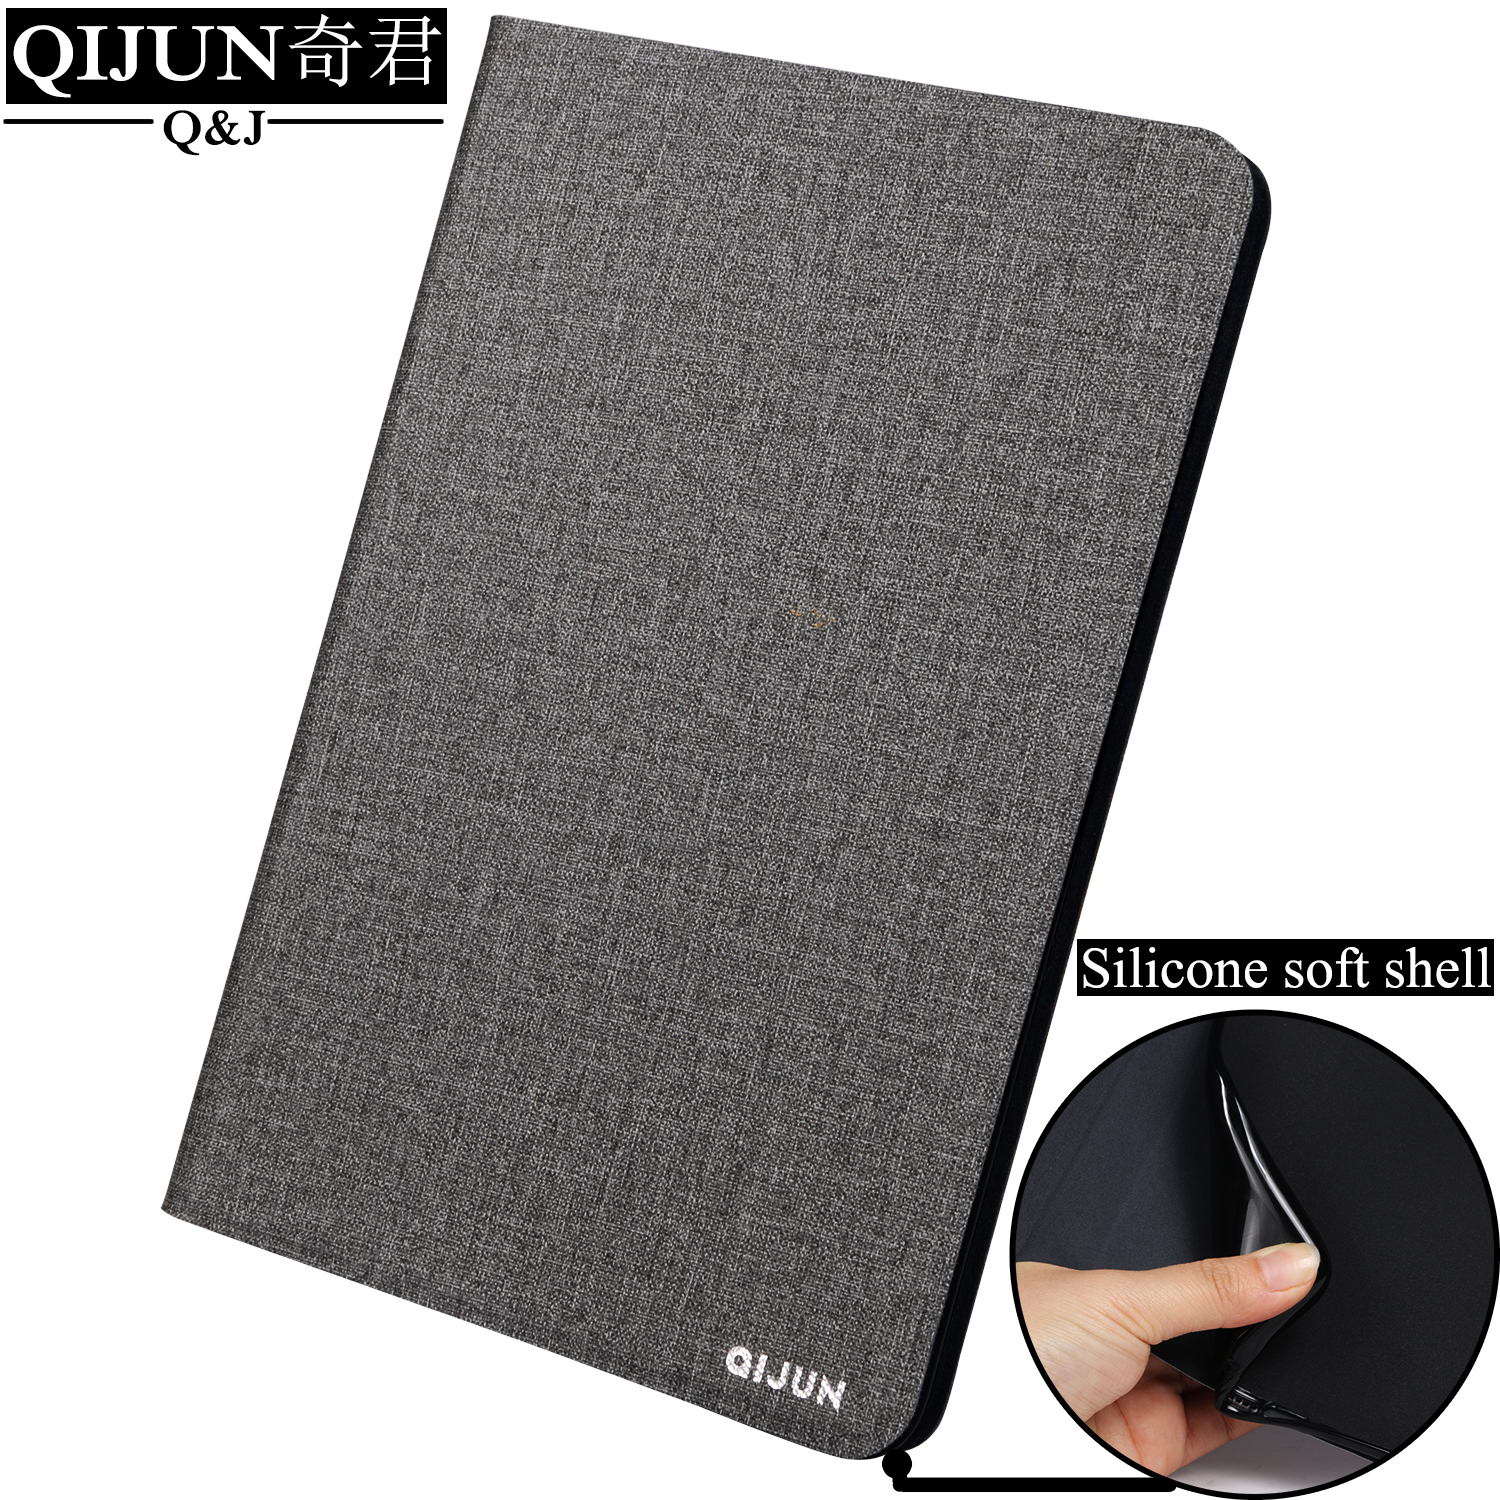 Flip PU Leather Tablet case For Samsung Galaxy Tab Pro T320 T321 8.4-inch Protective Stand Cover Soft Shell for T320 T321 T325 image